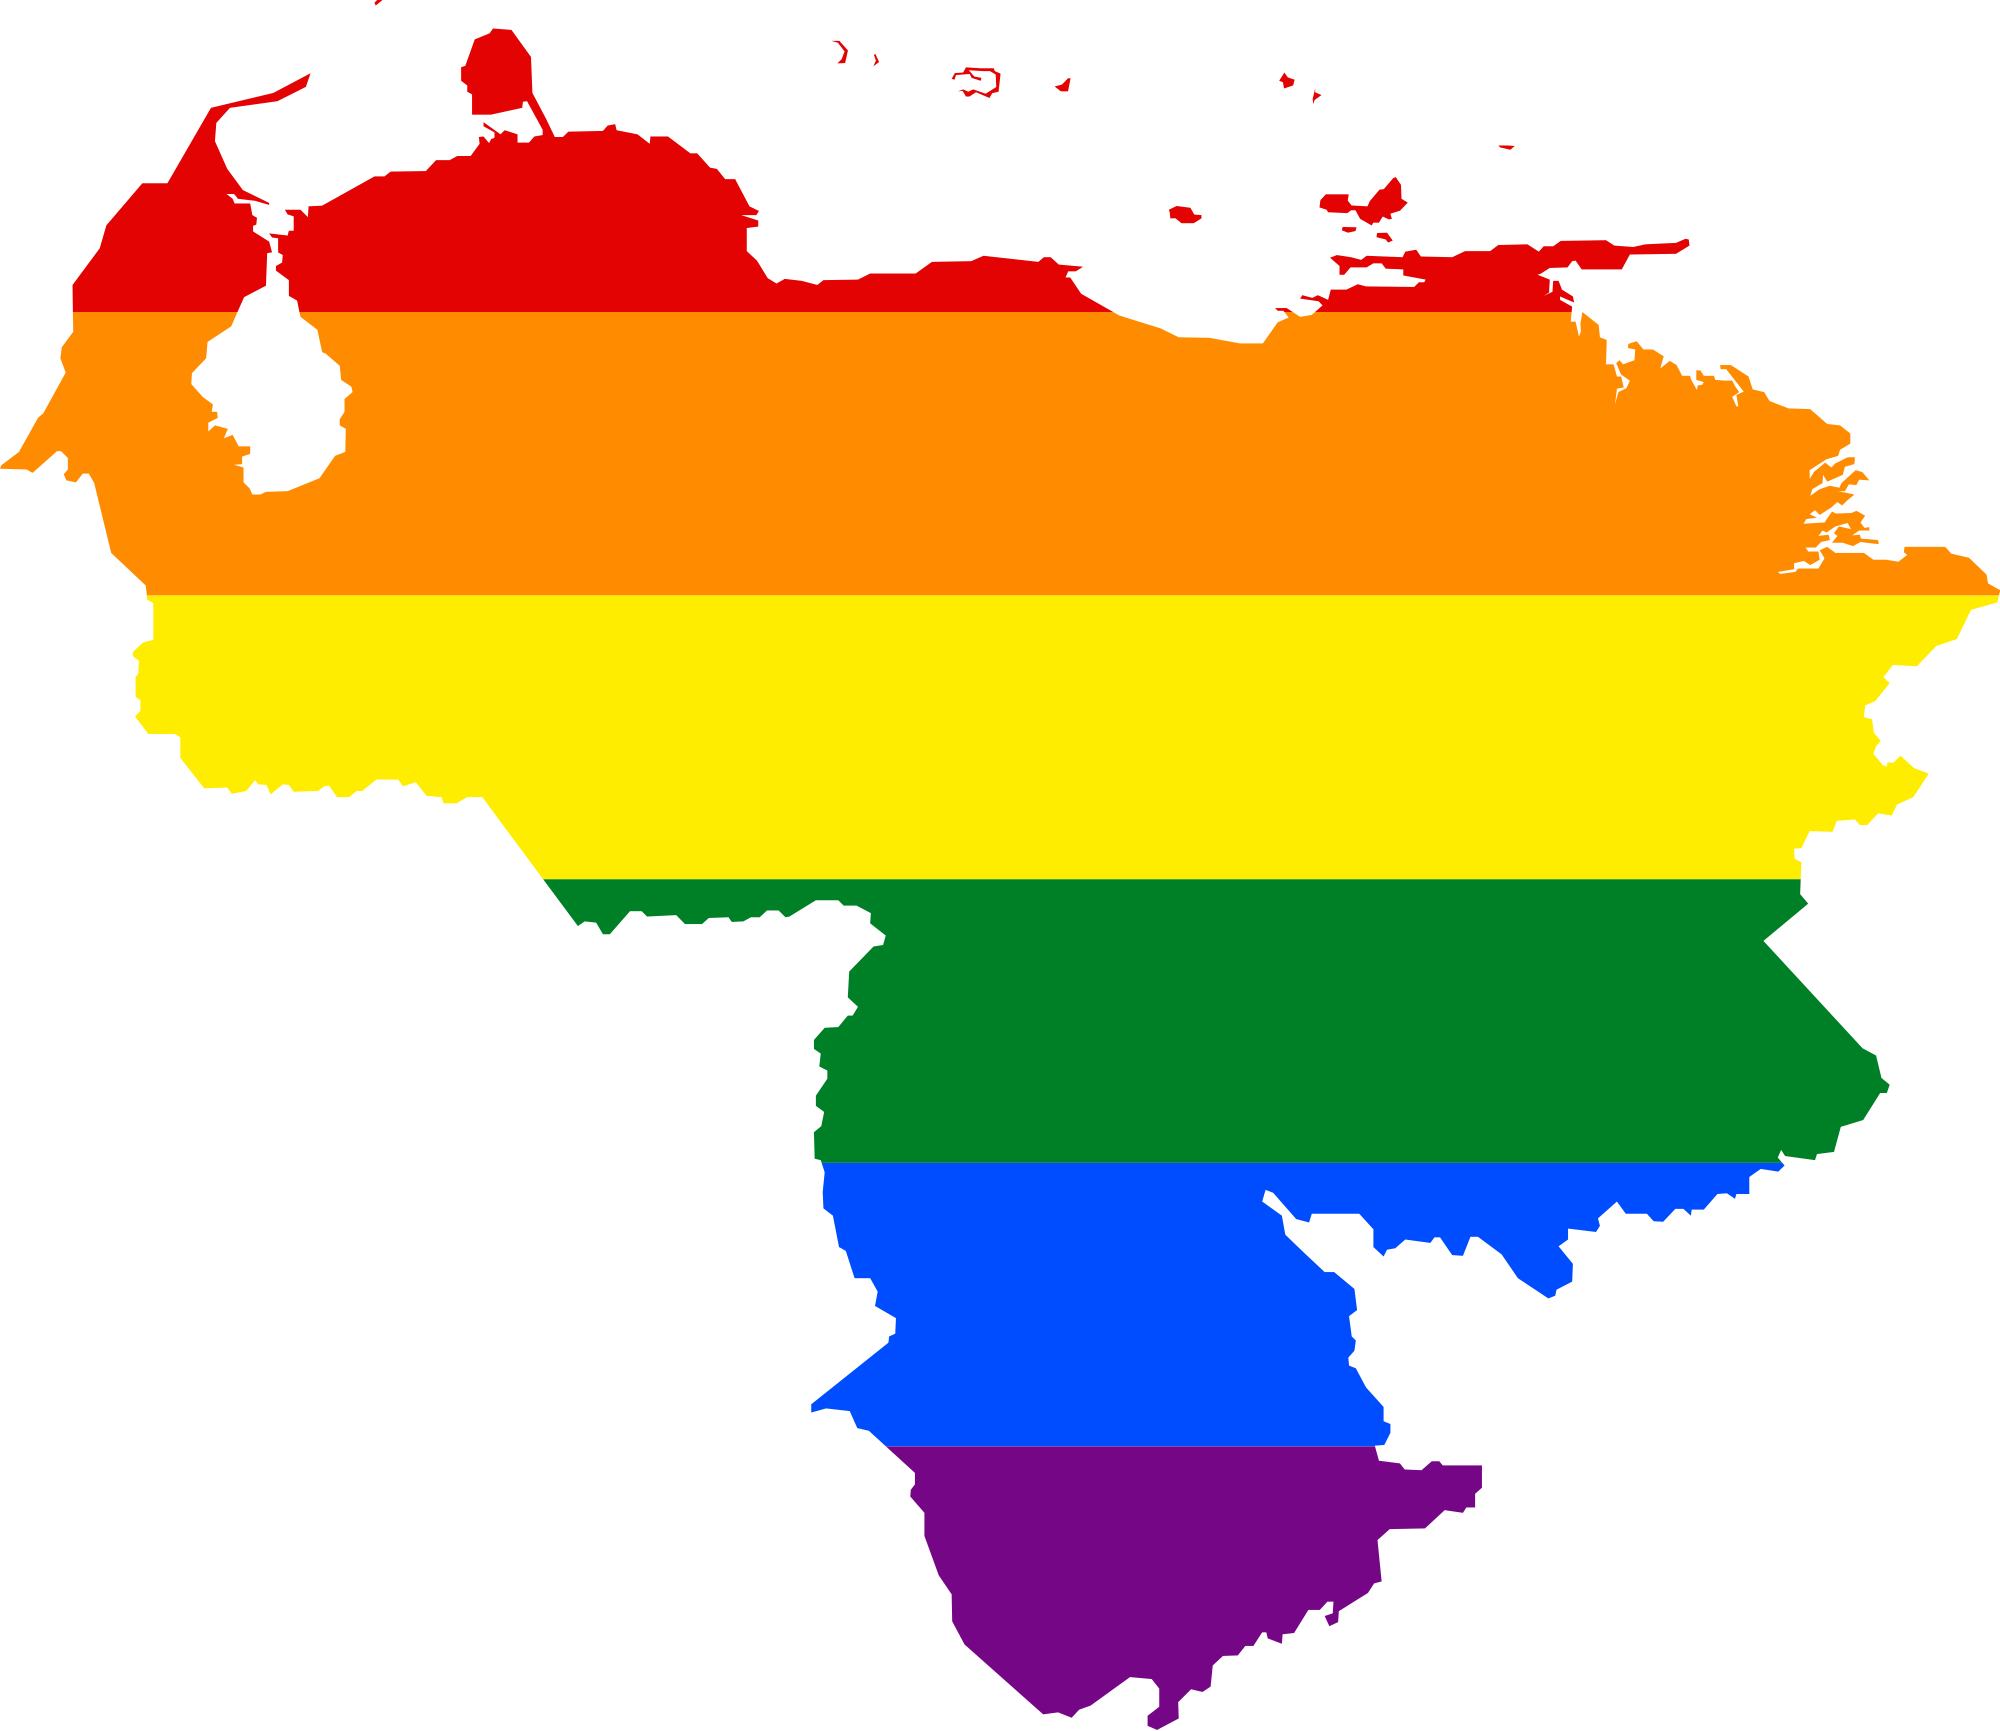 Venezuelan flag png. Image lgbt map of